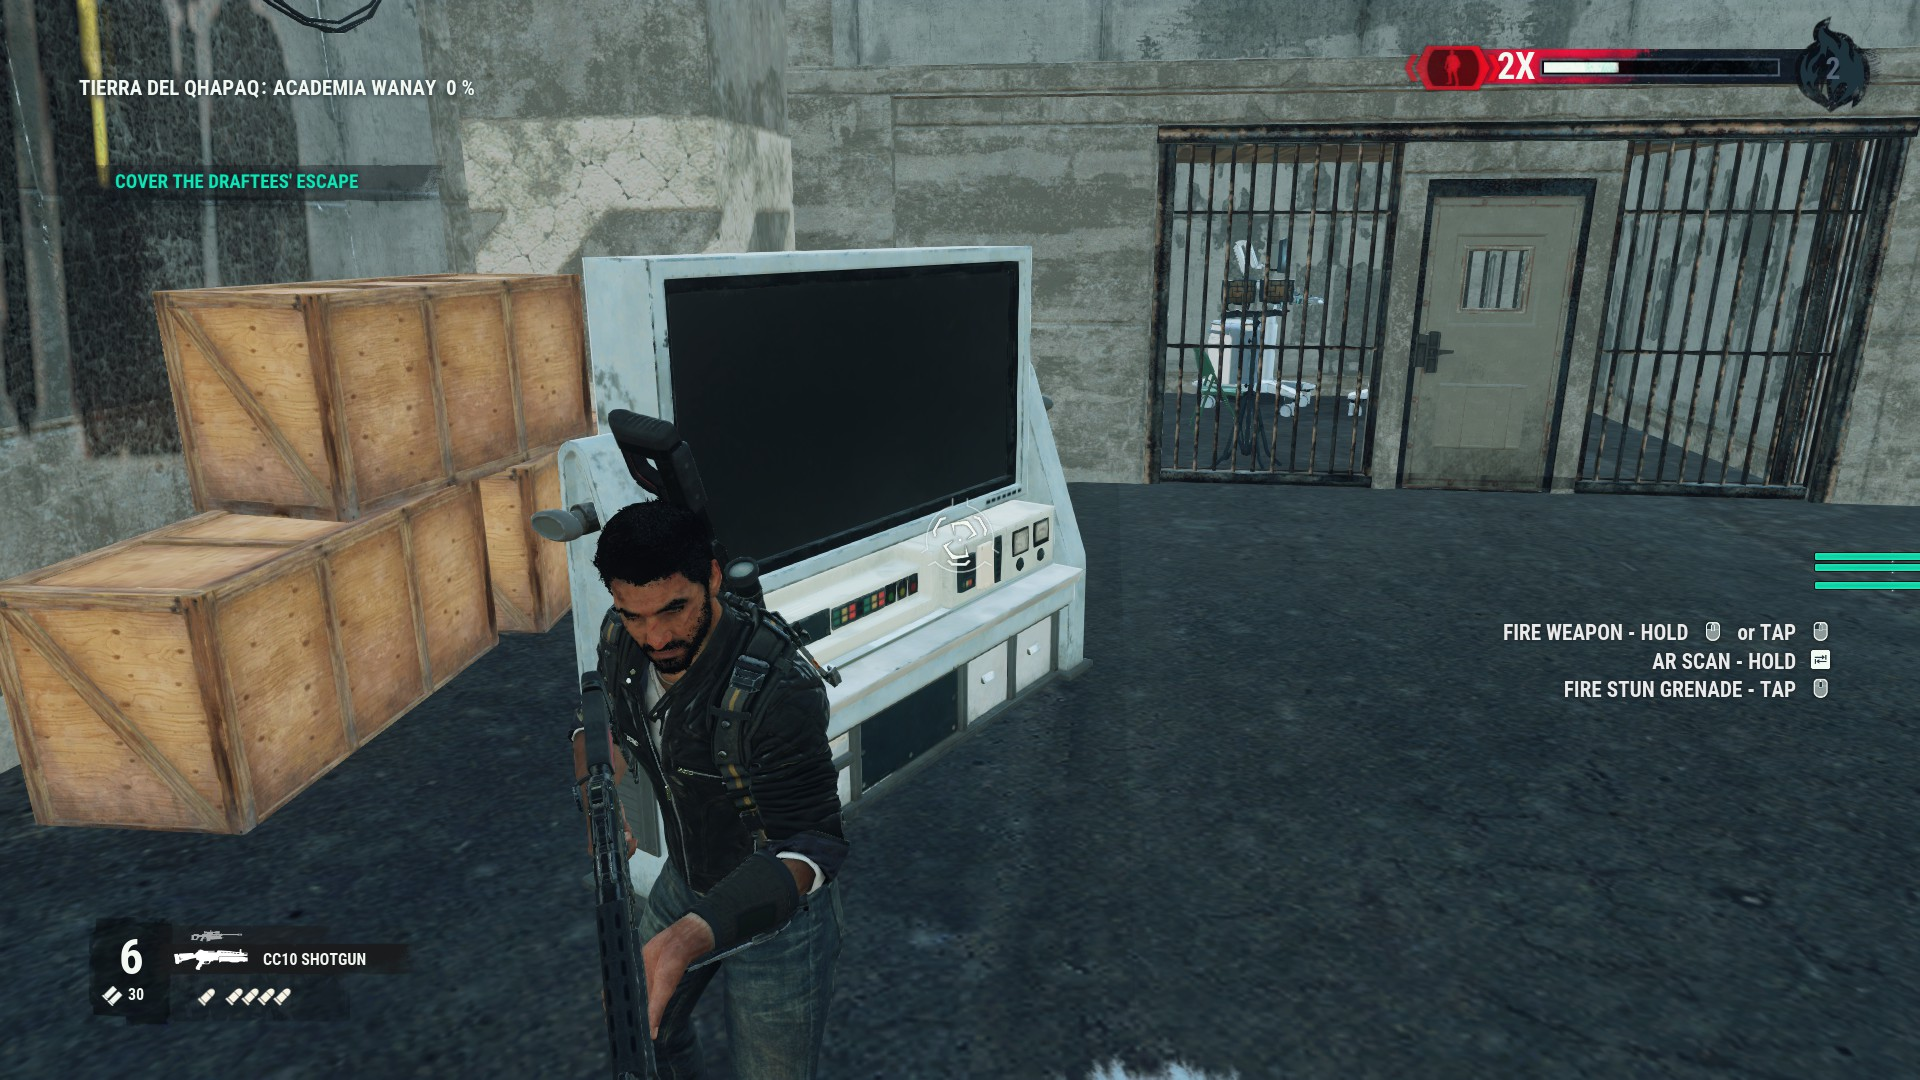 Just Cause 4 is a mess  | TechPowerUp Forums